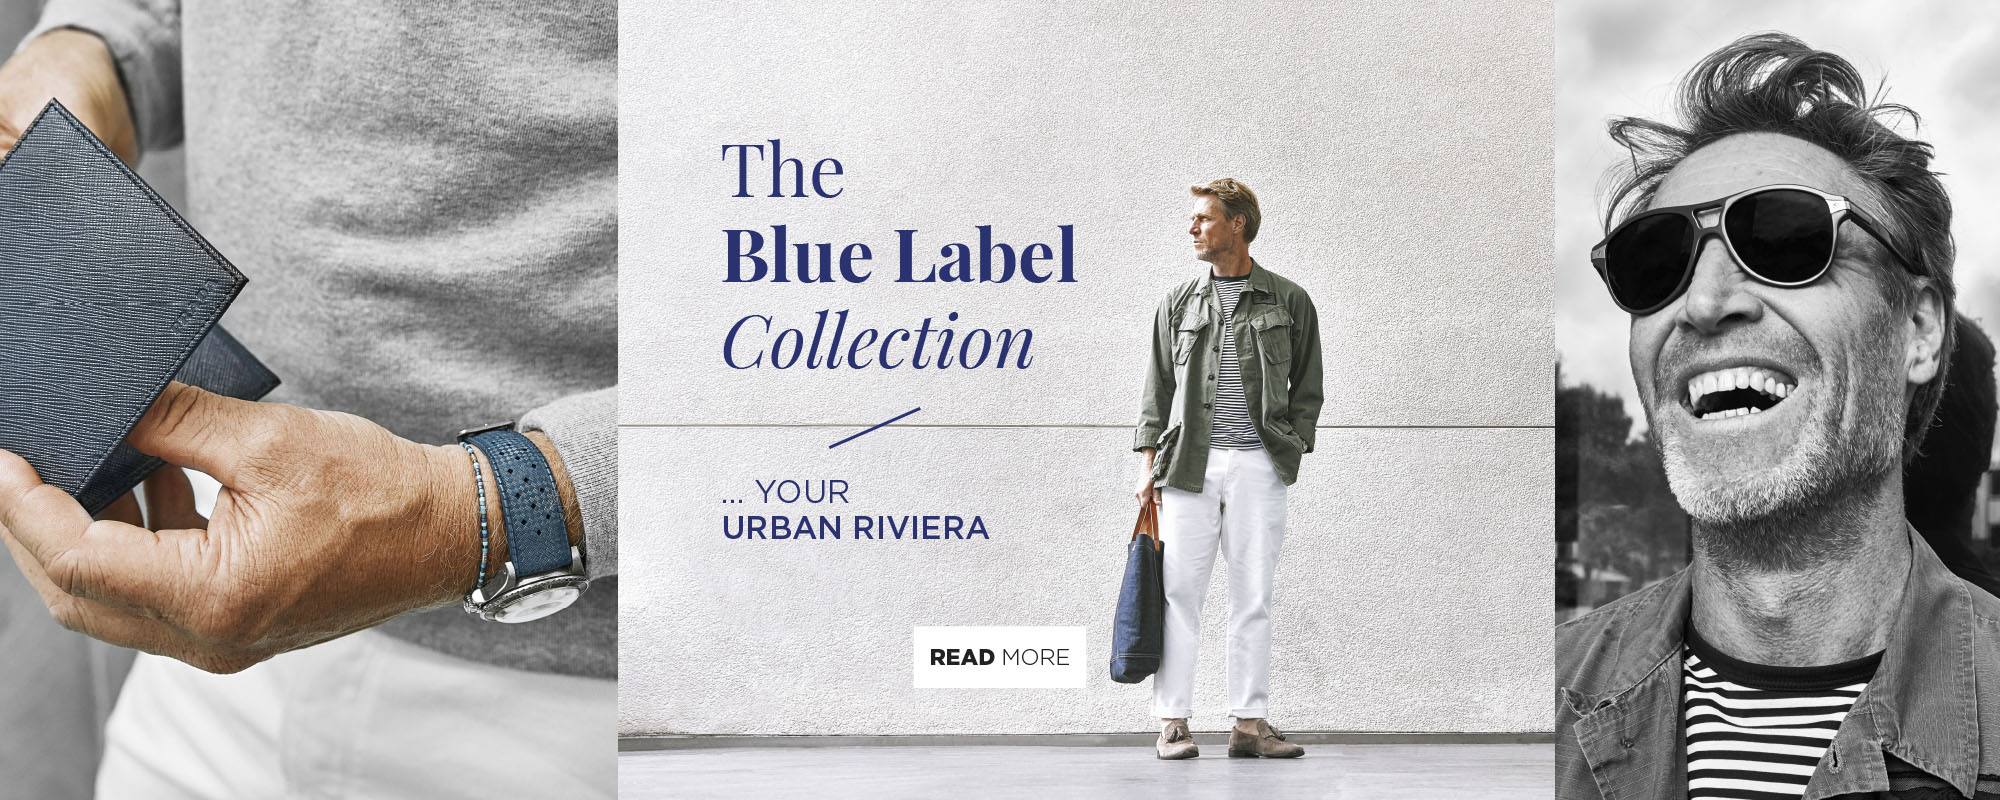 The Blue Label Collection